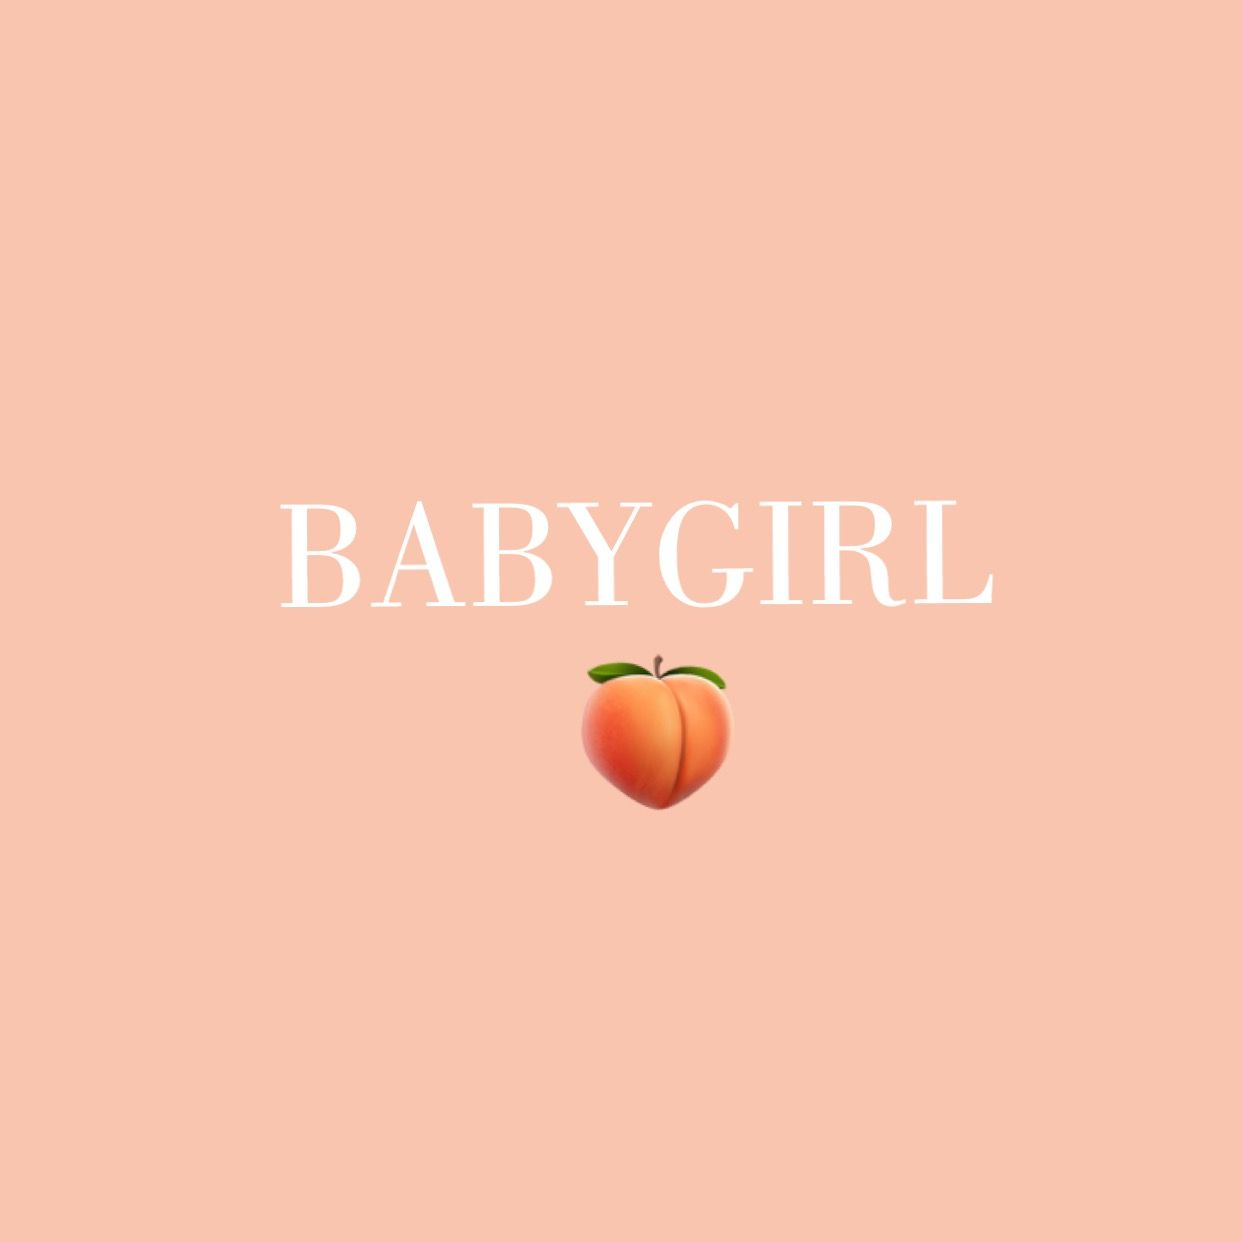 babygirl by queenmae19 Cute wallpapers, Peach aesthetic